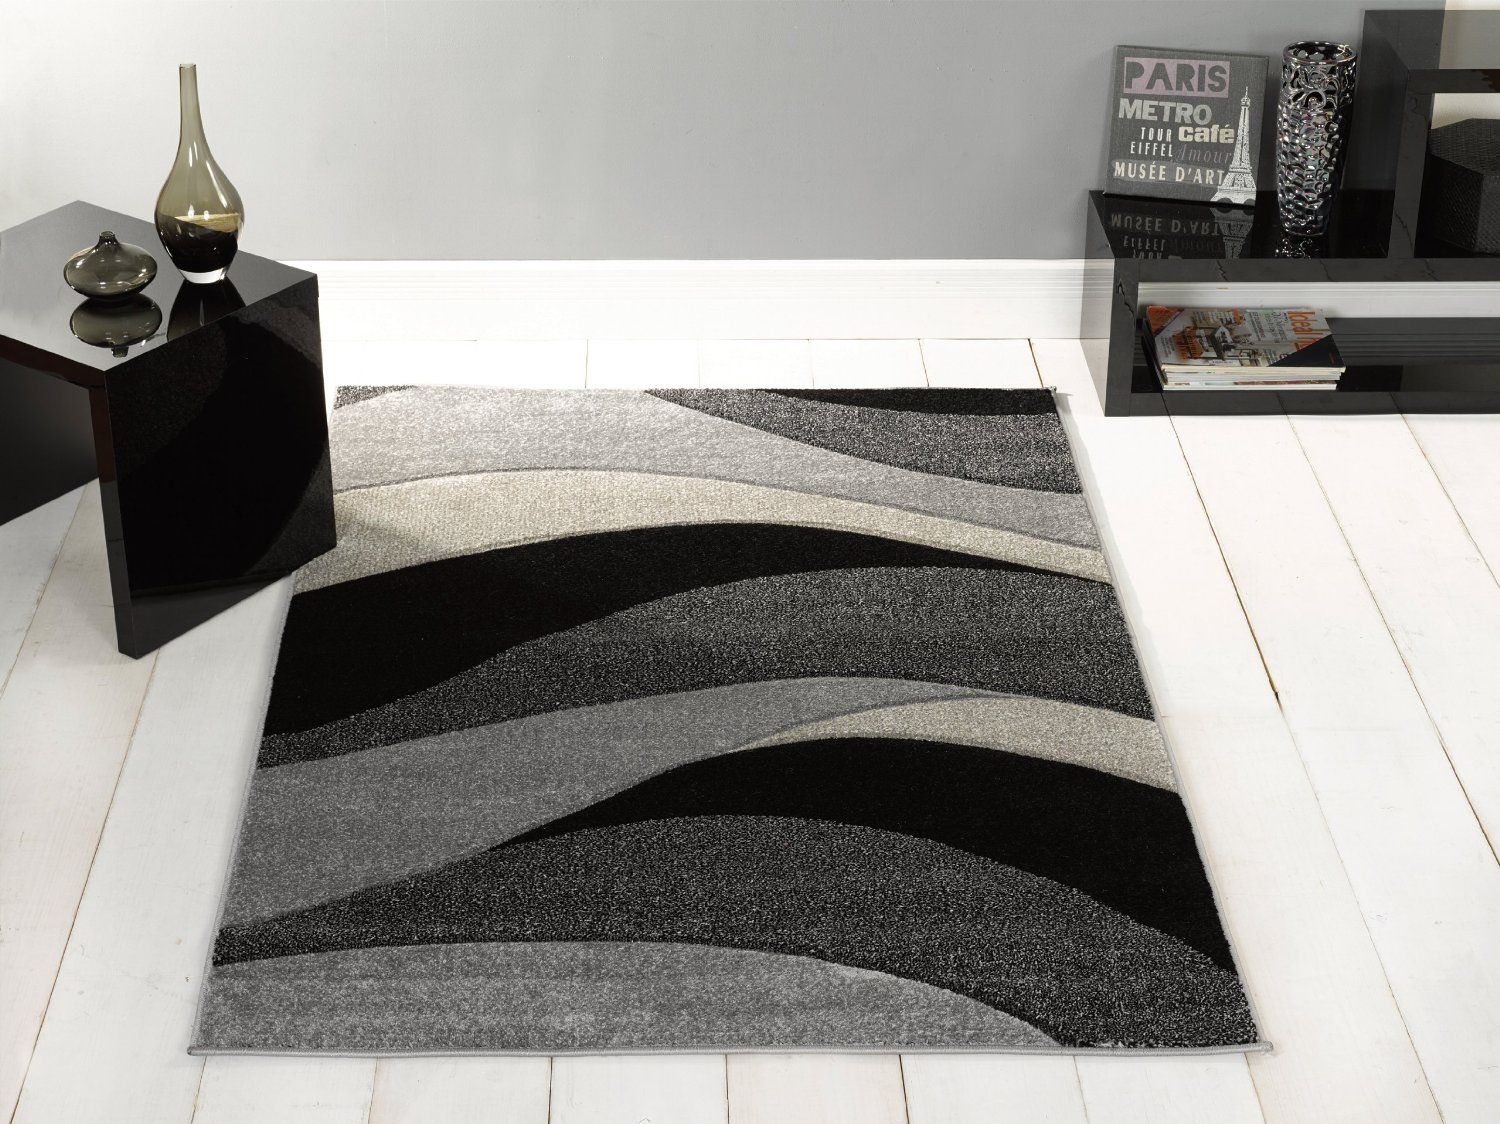 Large Contemporary Waves Design Black Grey Area Rug In 120 X 170 Cm 4